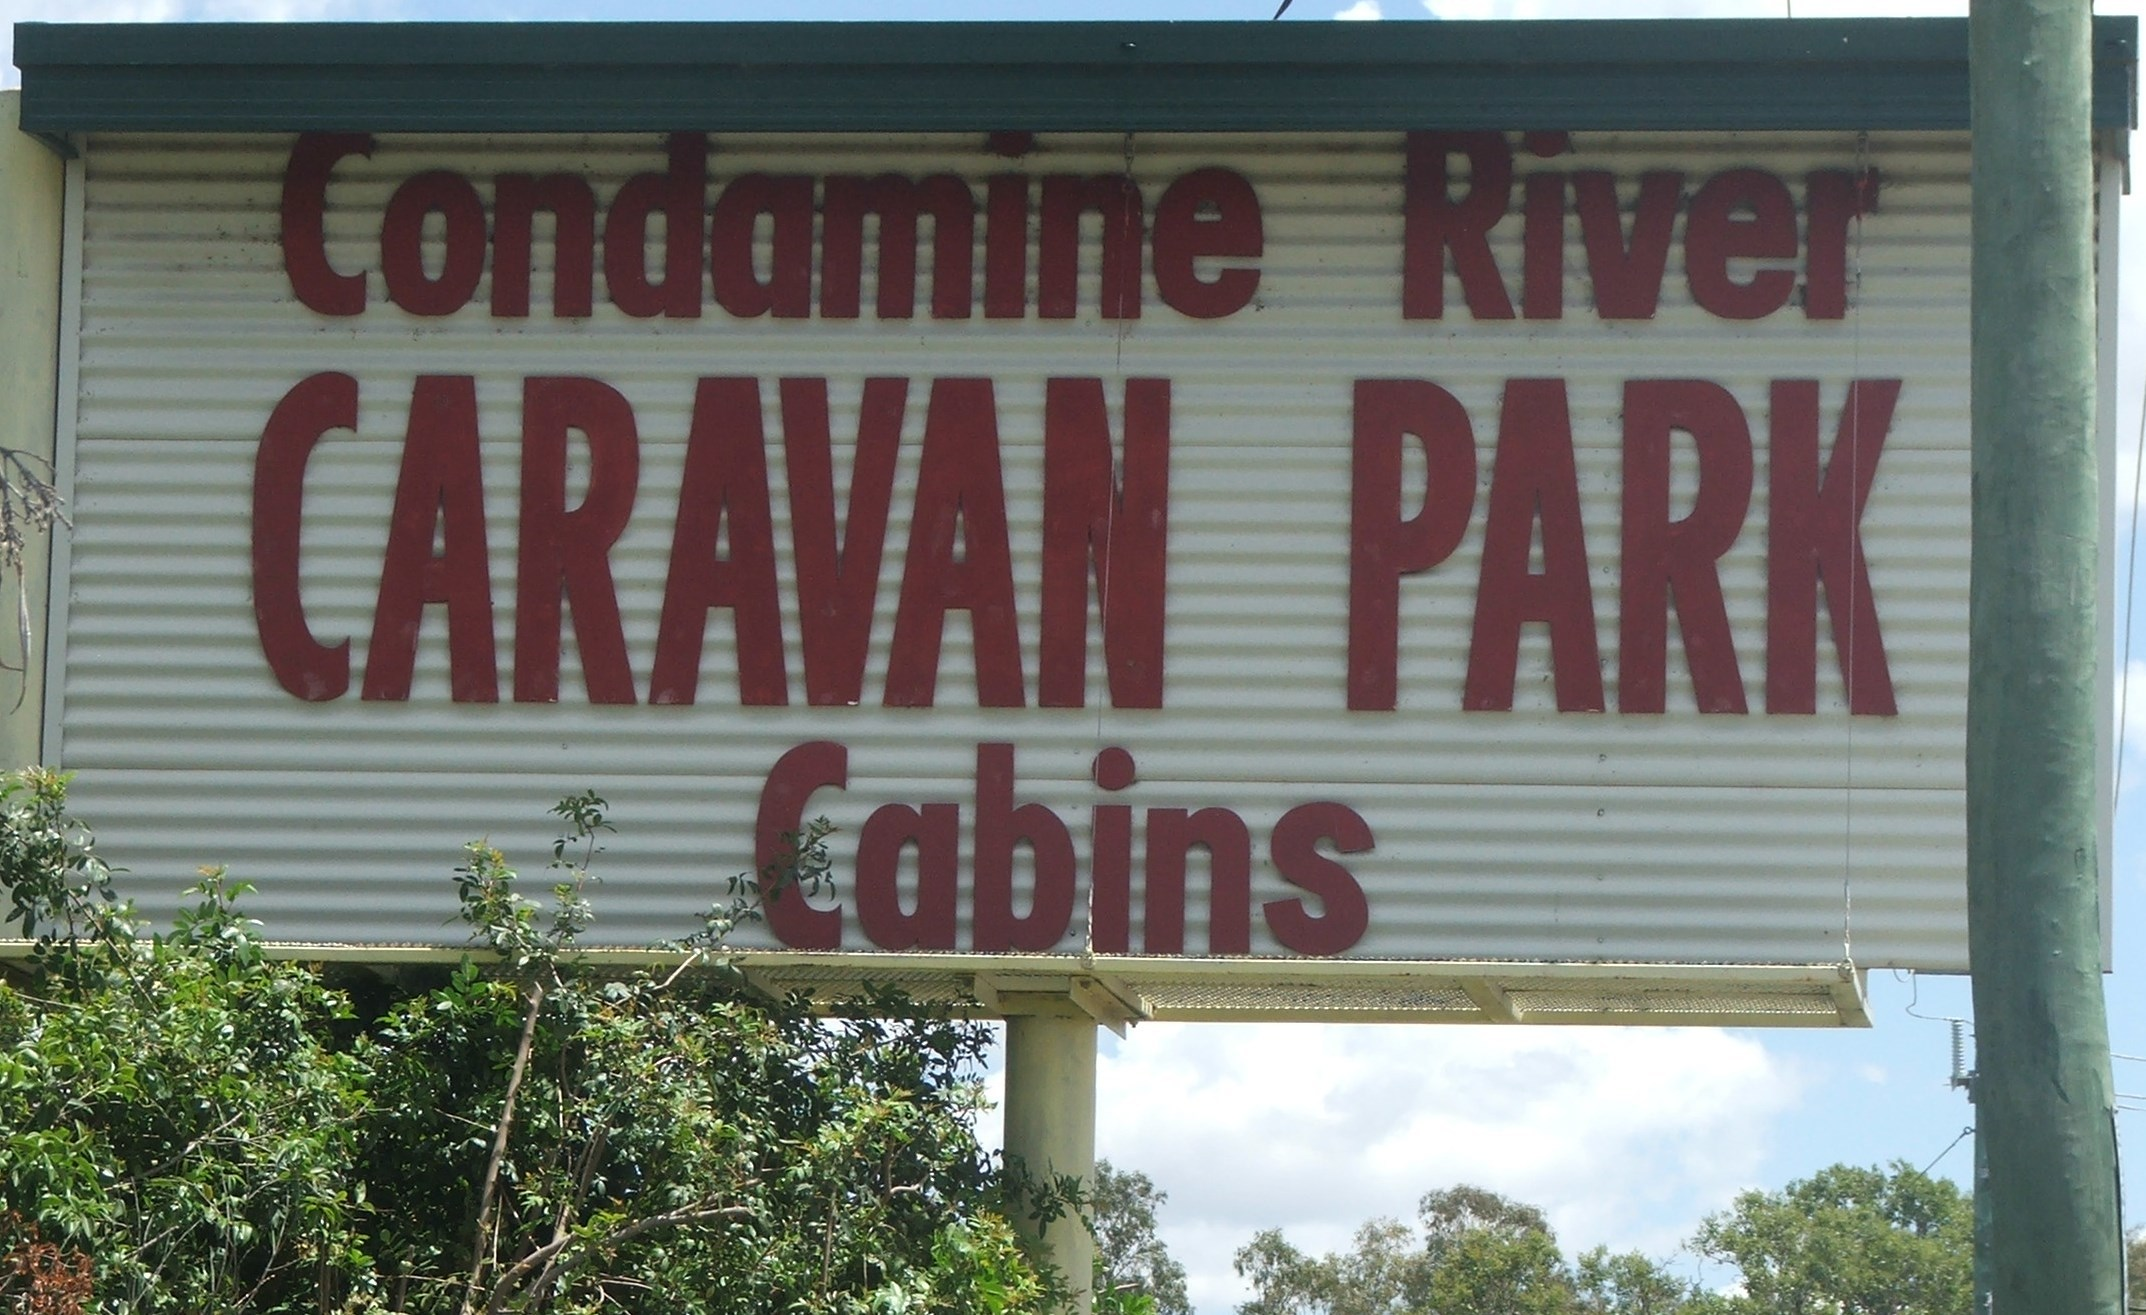 Caravan Park & Cabins + Business + Extra 3 Bedroom Residence